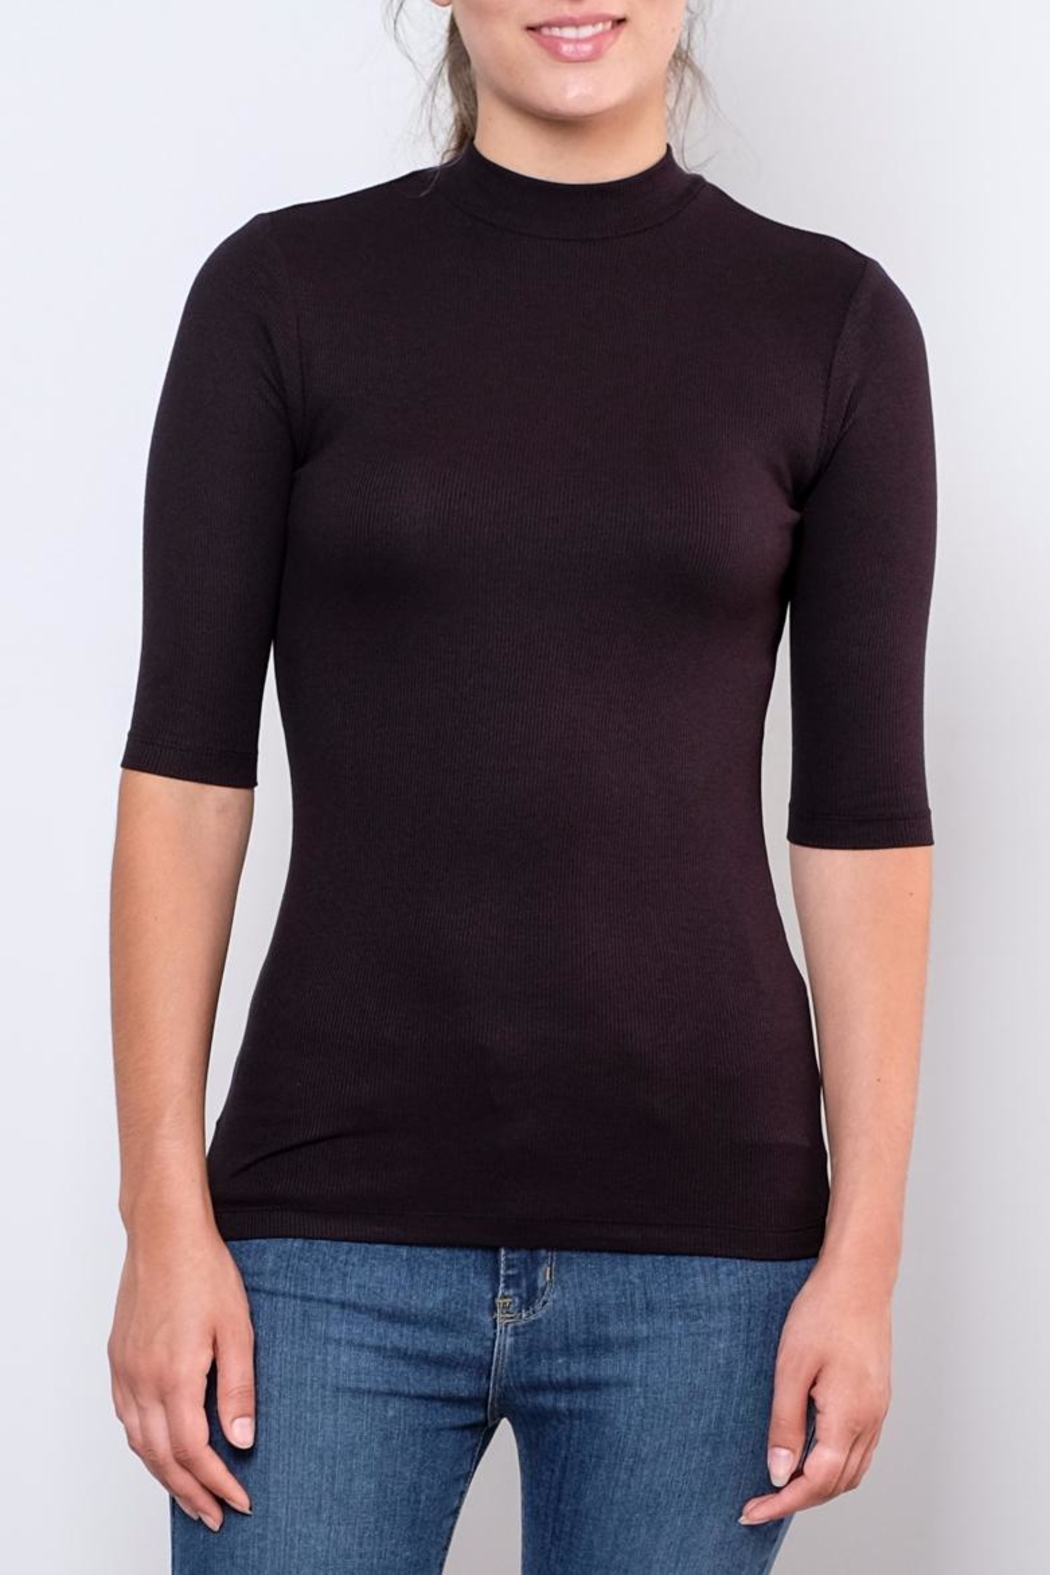 Vero Moda Fitted Mock-Neck Top - Main Image